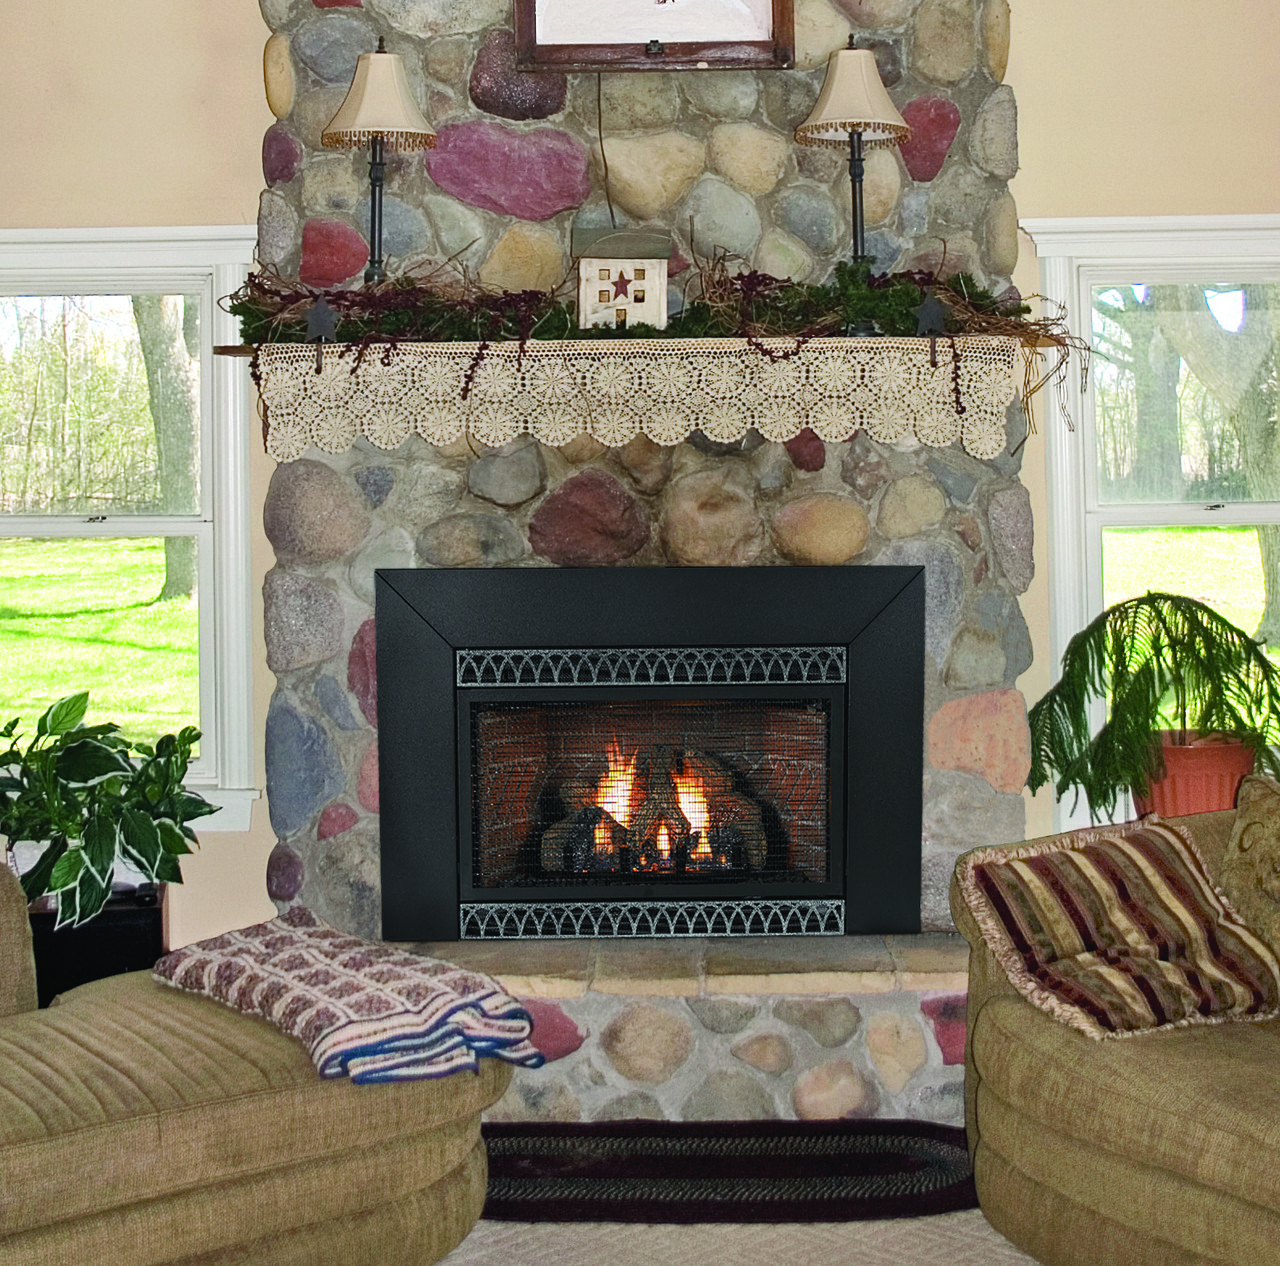 White Mountain Hearth Vfp20in23l Innsbrook Vent Free Fireplace Insert